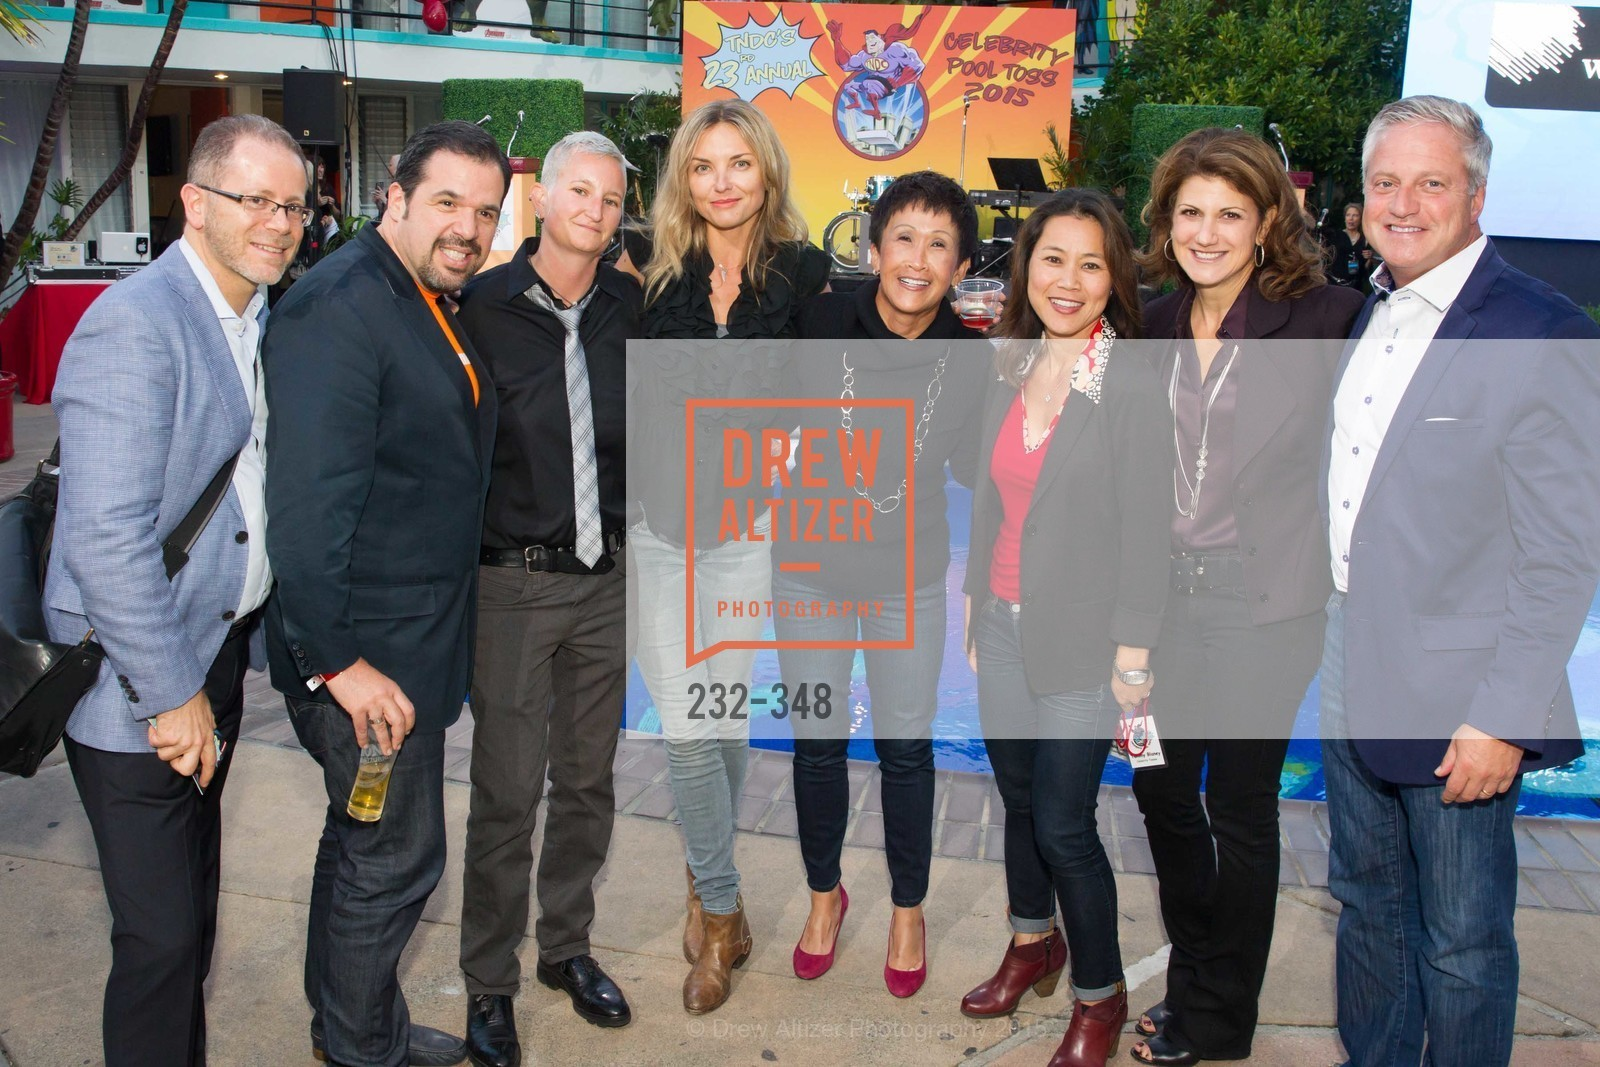 Peter Gamus, Diane Leach, Karolina Kielbowicz, Pat Bridgette, Niki Leondakis, Brian Jones, TNDC Annual Celebrity Pool Toss, Phoenix Hotel. 601 Eddy St, October 7th, 2015,Drew Altizer, Drew Altizer Photography, full-service agency, private events, San Francisco photographer, photographer california